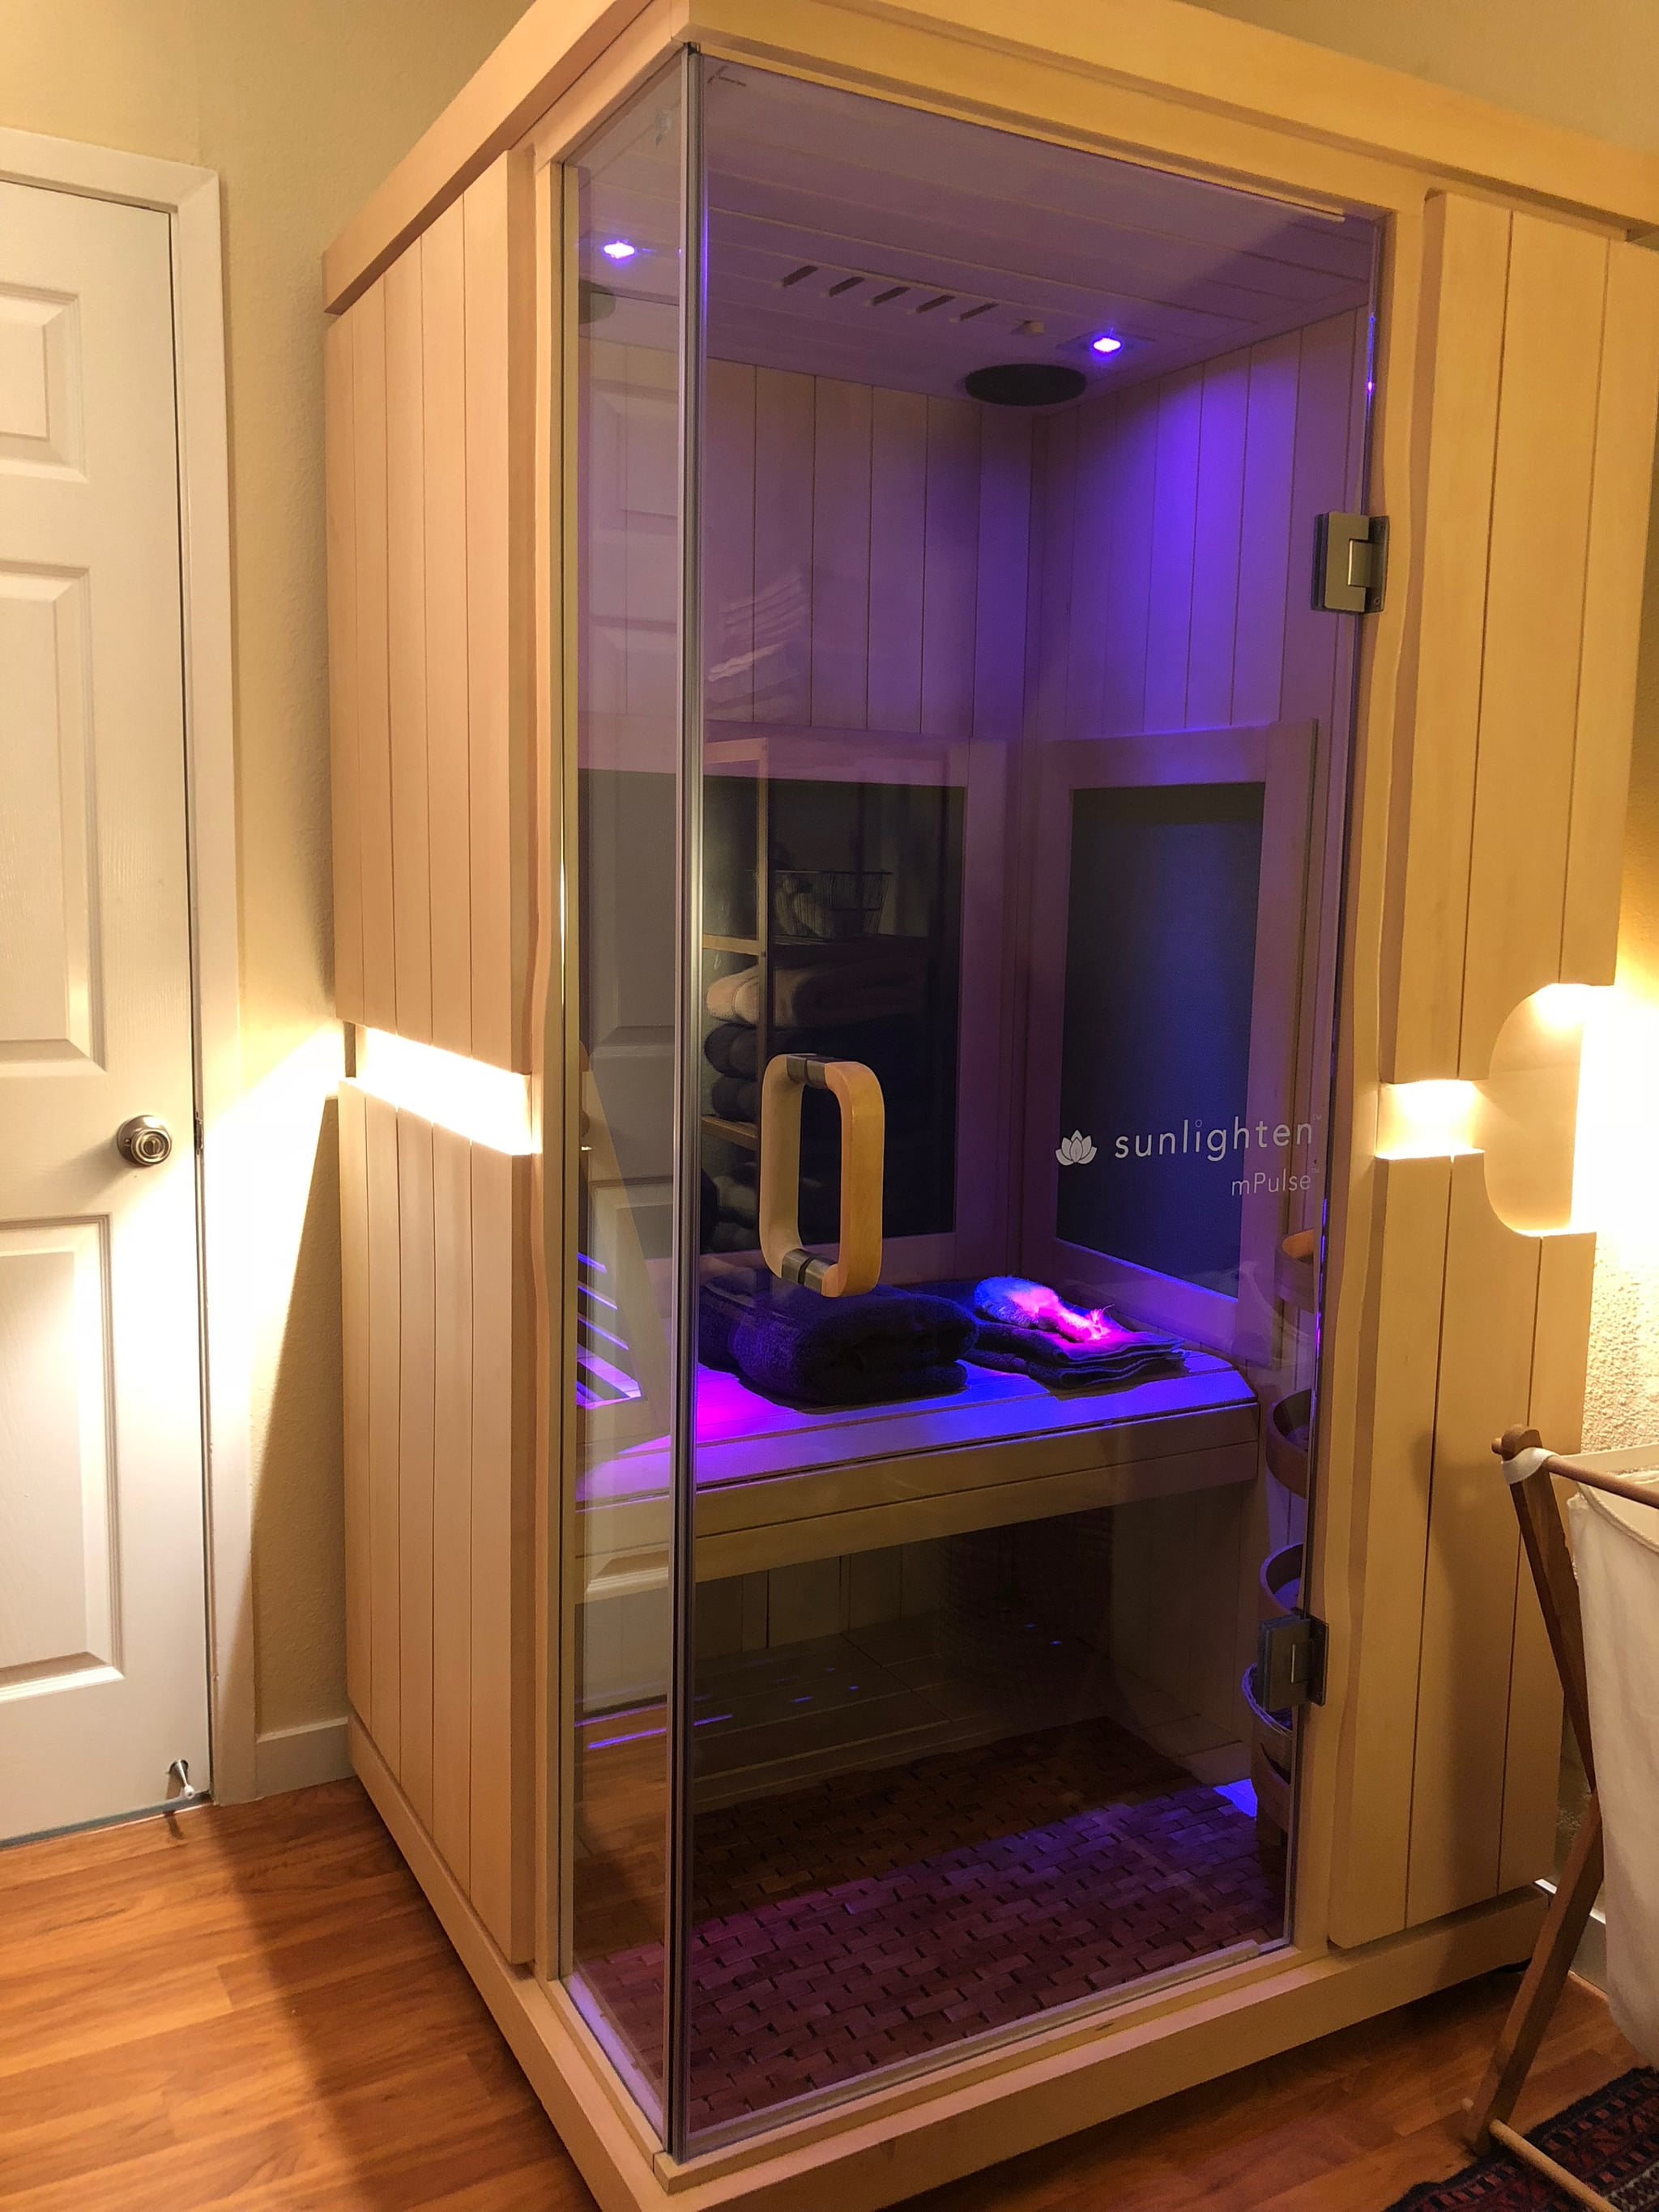 Benefits Of Infrared Sauna Popsugar Fitness